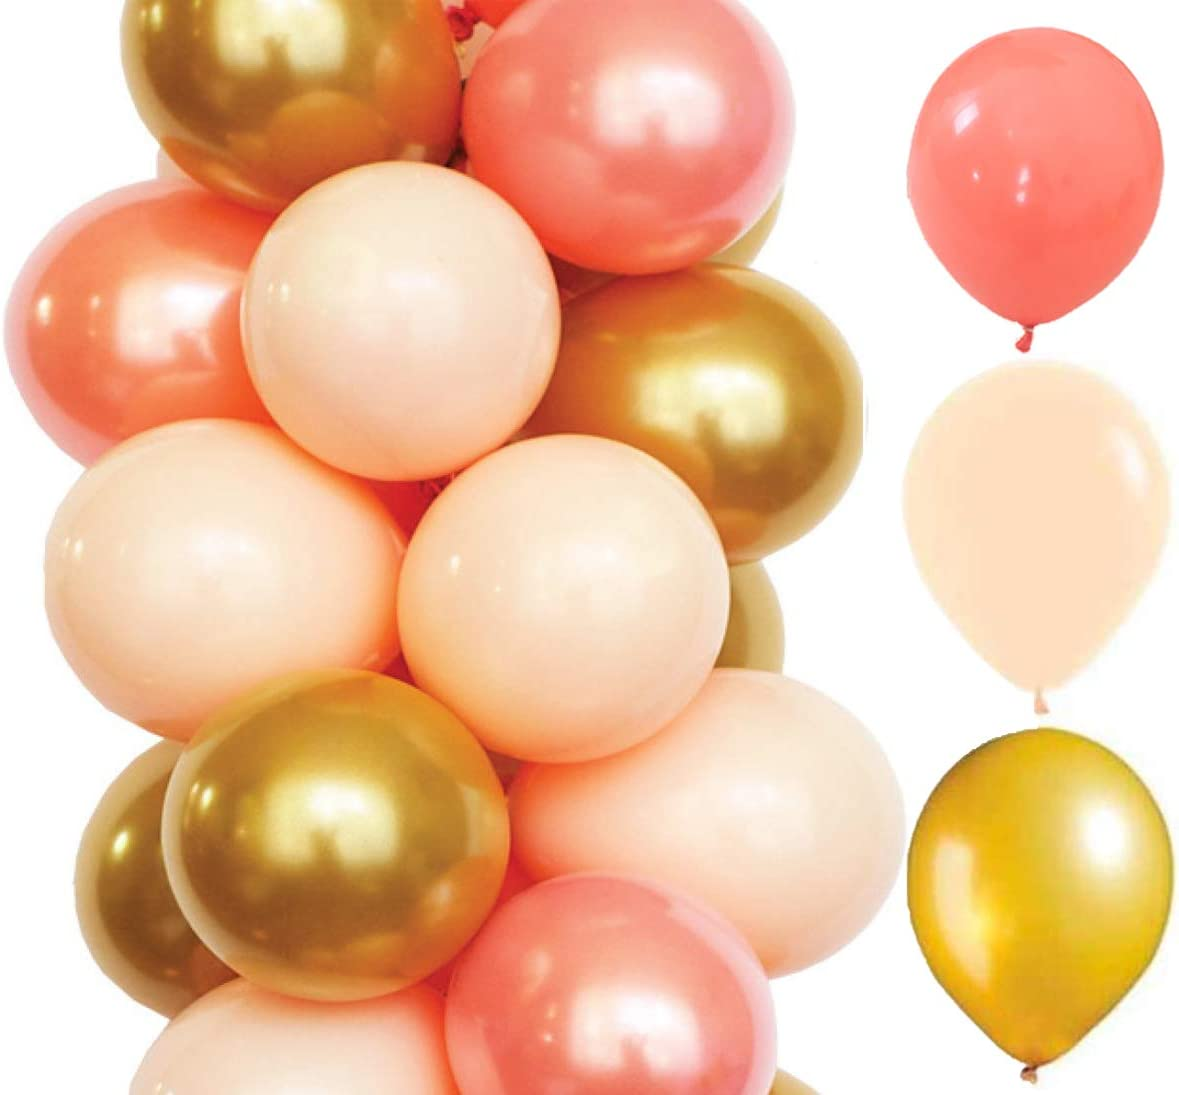 60 Pack 12 Inch Coral Peach Party Max 44% OFF Wedding Gold Birthday Balloon Free Shipping New